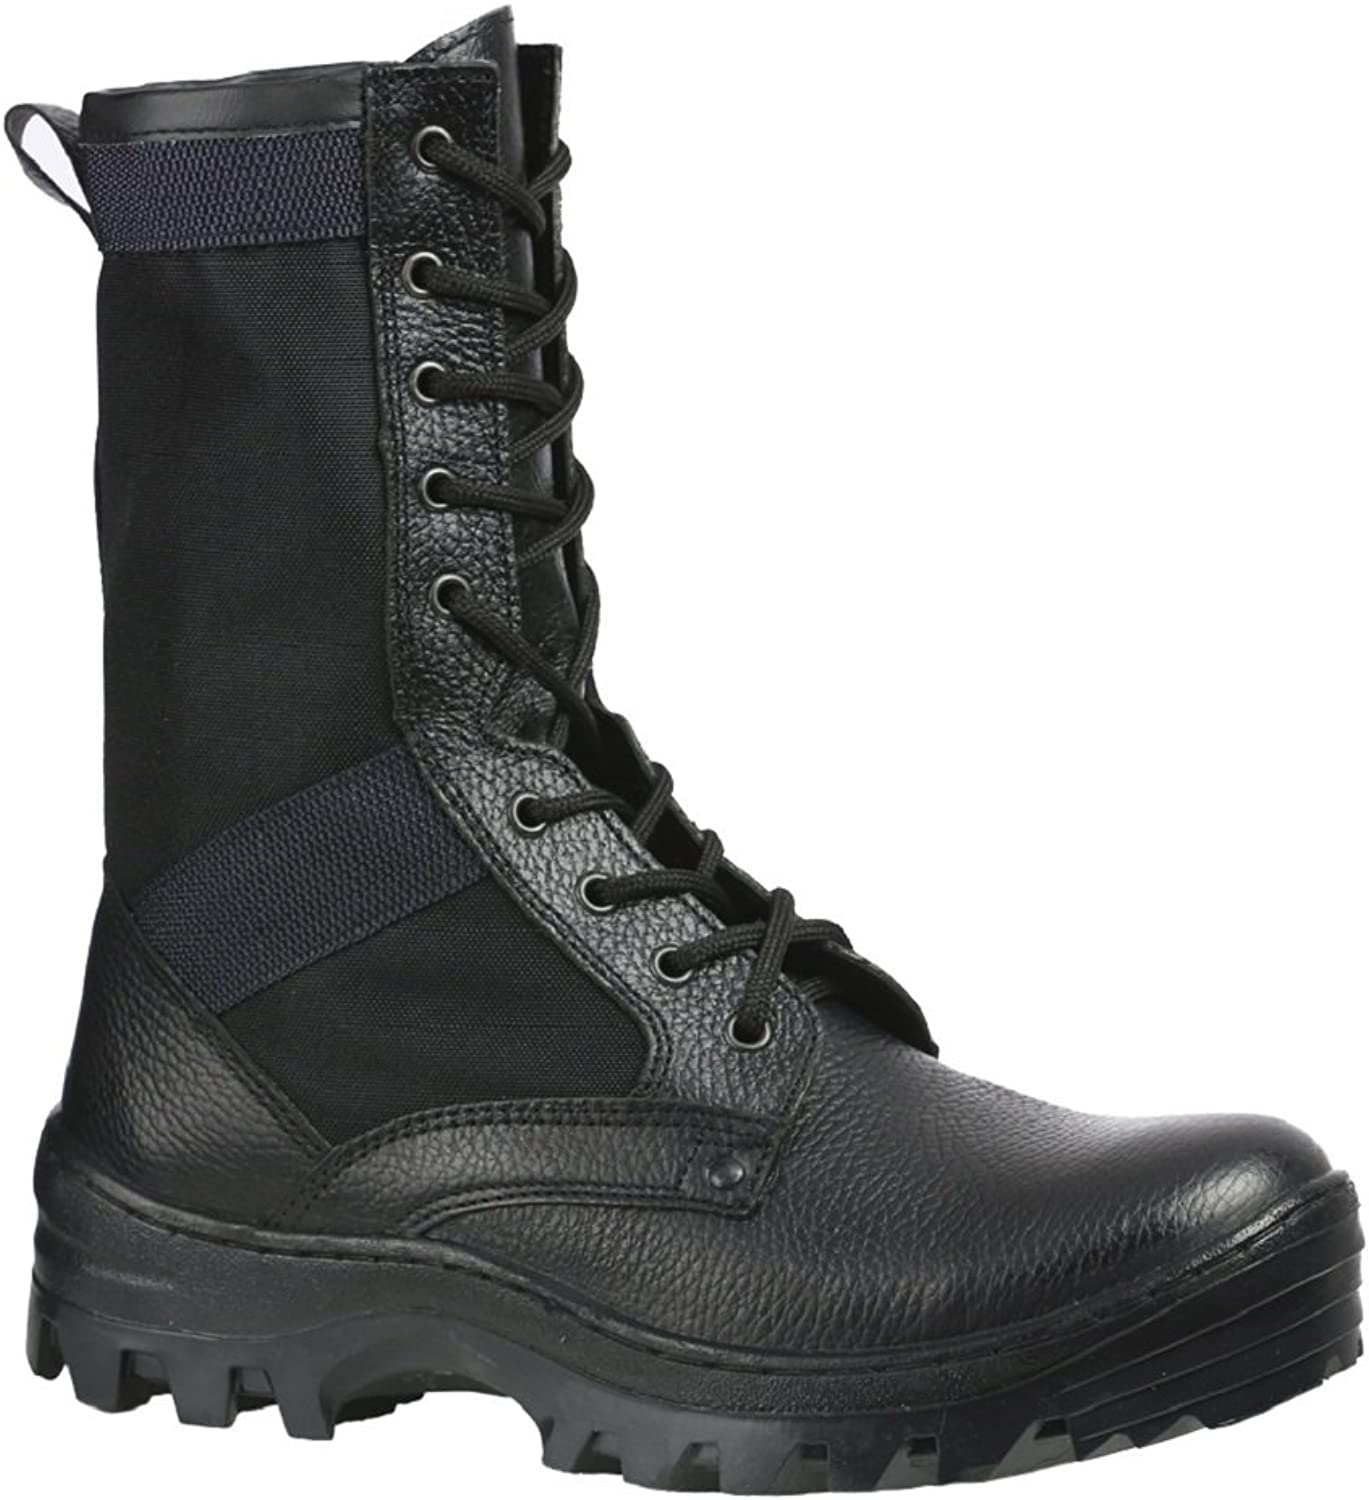 Byteks Authentic Ex-Soviet Tactical Duty Hiking SWAT Boots (Tropic 716) Made in Belarus. Black